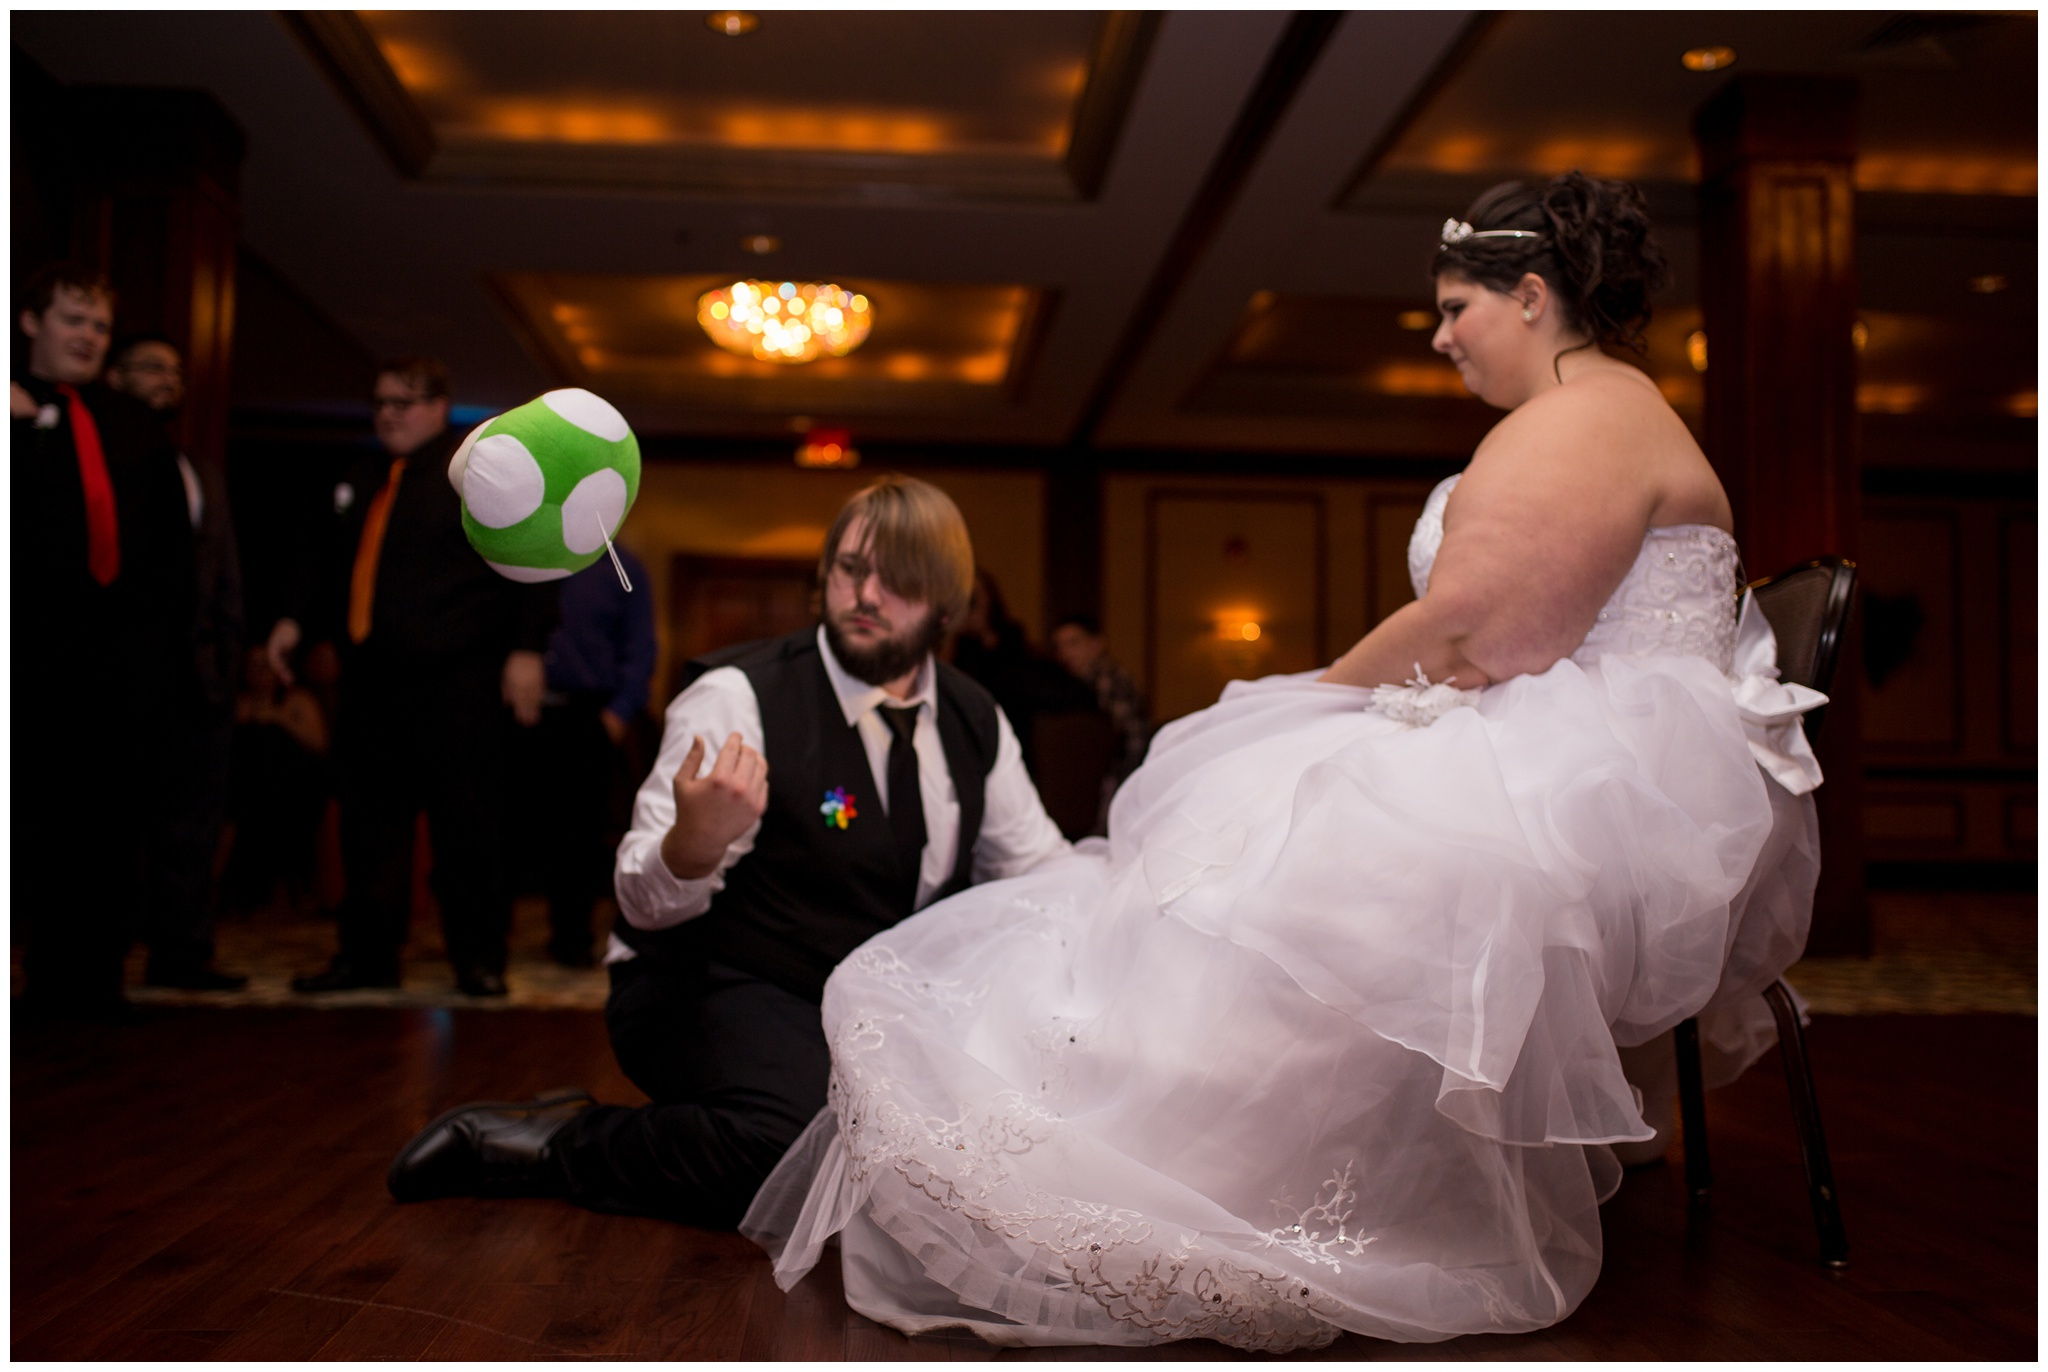 groom finding garter during Community Life Center wedding reception in Indianapolis